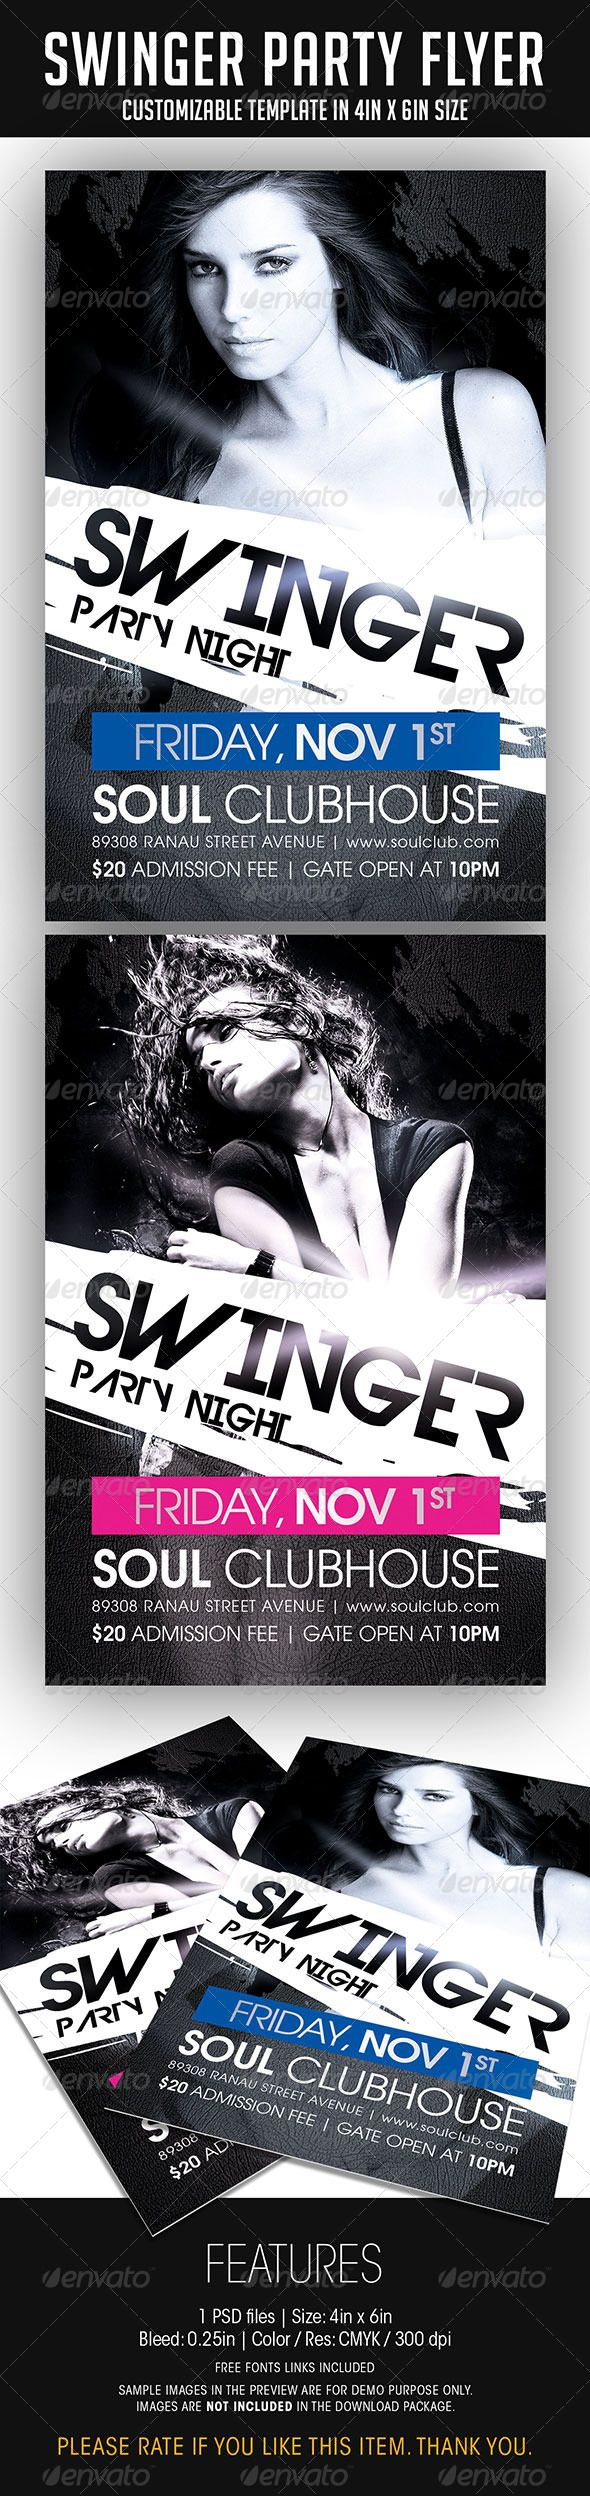 Swinger Party Flyer #GraphicRiver SWINGER PARTY FLYER FEATURES 1 PSD file • PSD Layers are well organized, grouped, and appropriately named Size: 4in x 6in (Portrait) Bleed: 0.25in Color: CMYK / 300 dpi